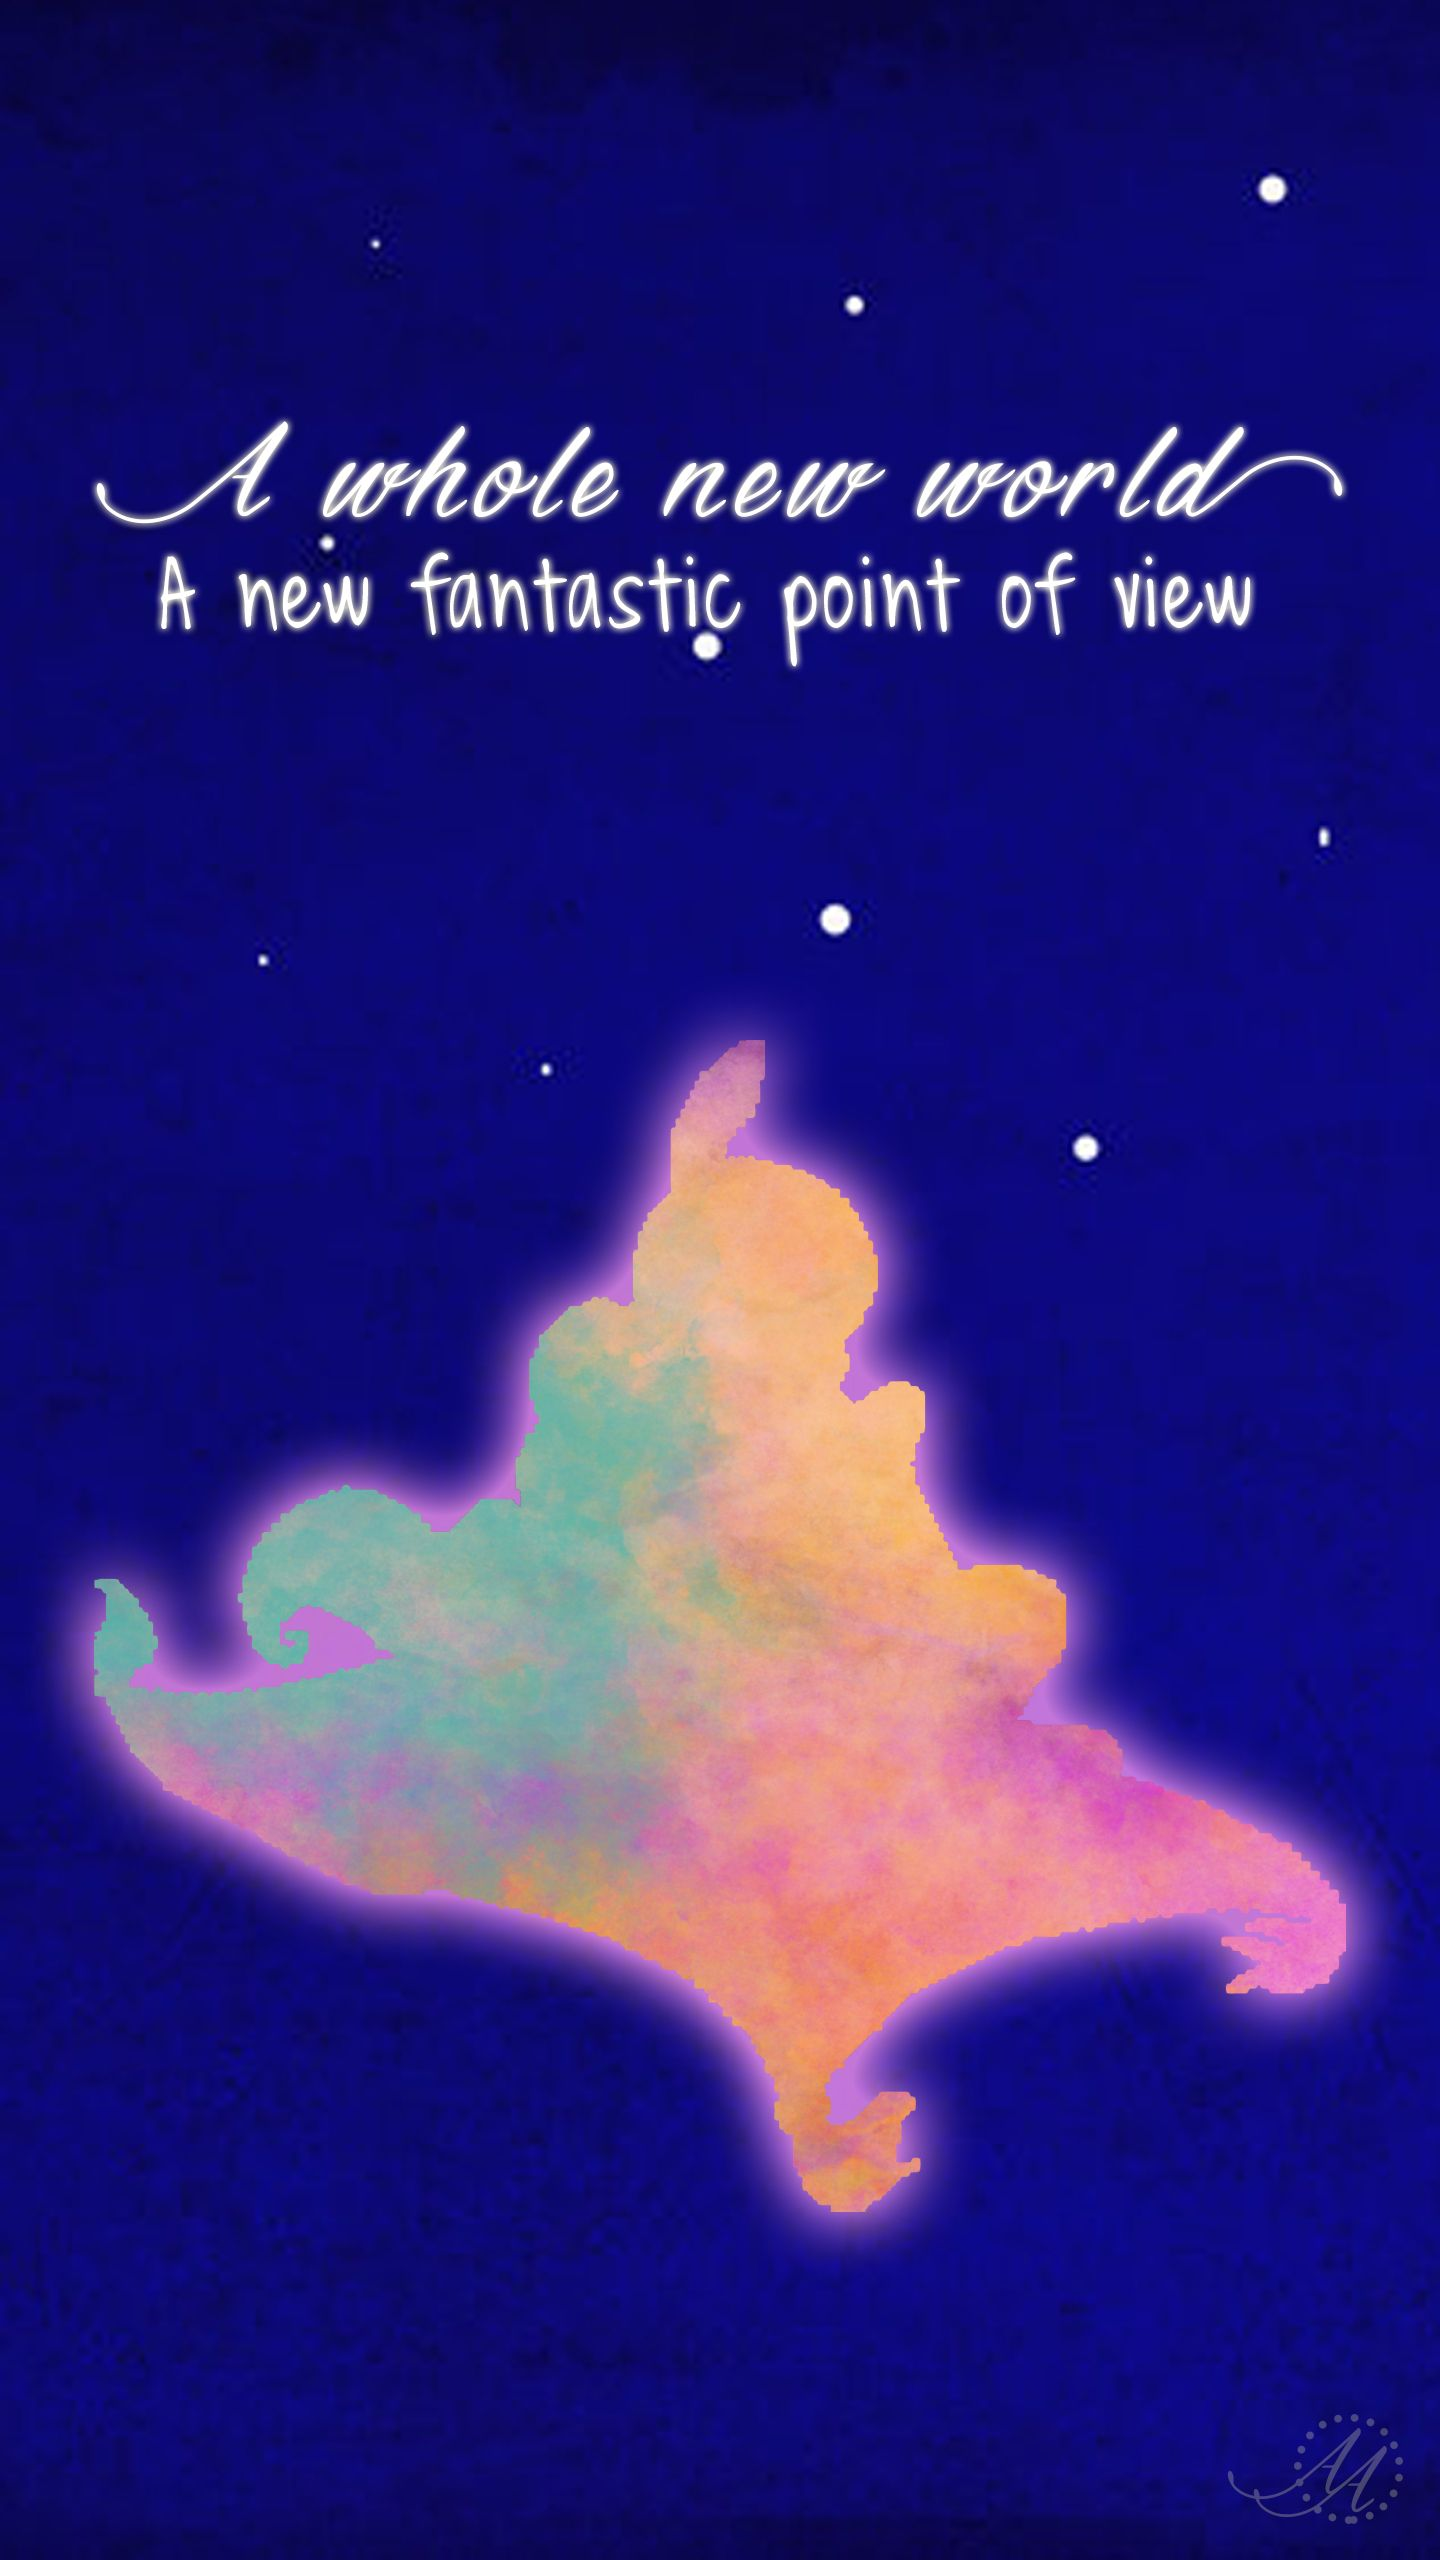 Musical Birthday Quotes Wallpapers A Whole New World From The 1992 Disney Movie Aladdin